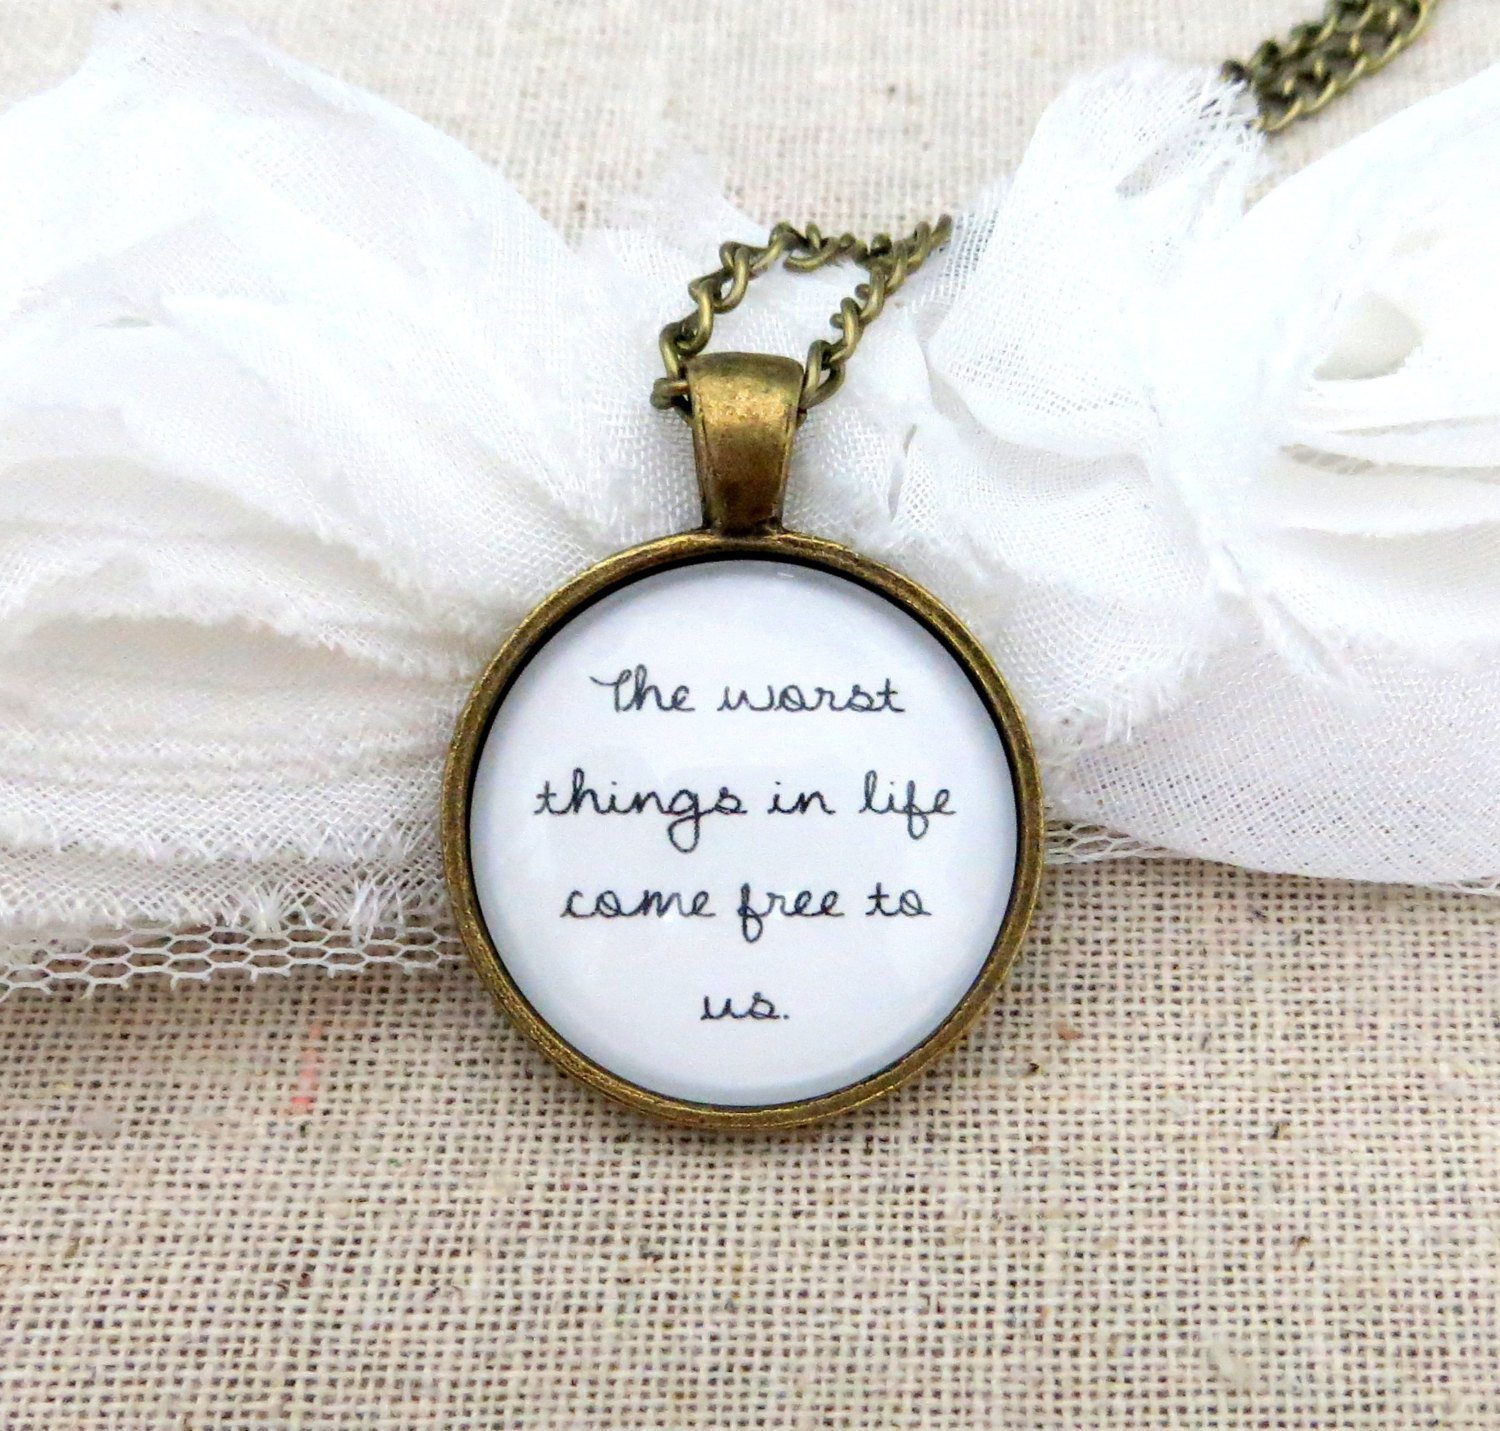 Ed Sheeran The A Team Inspired Lyrical Quote Pendant Necklace (Brass, 18 inches)